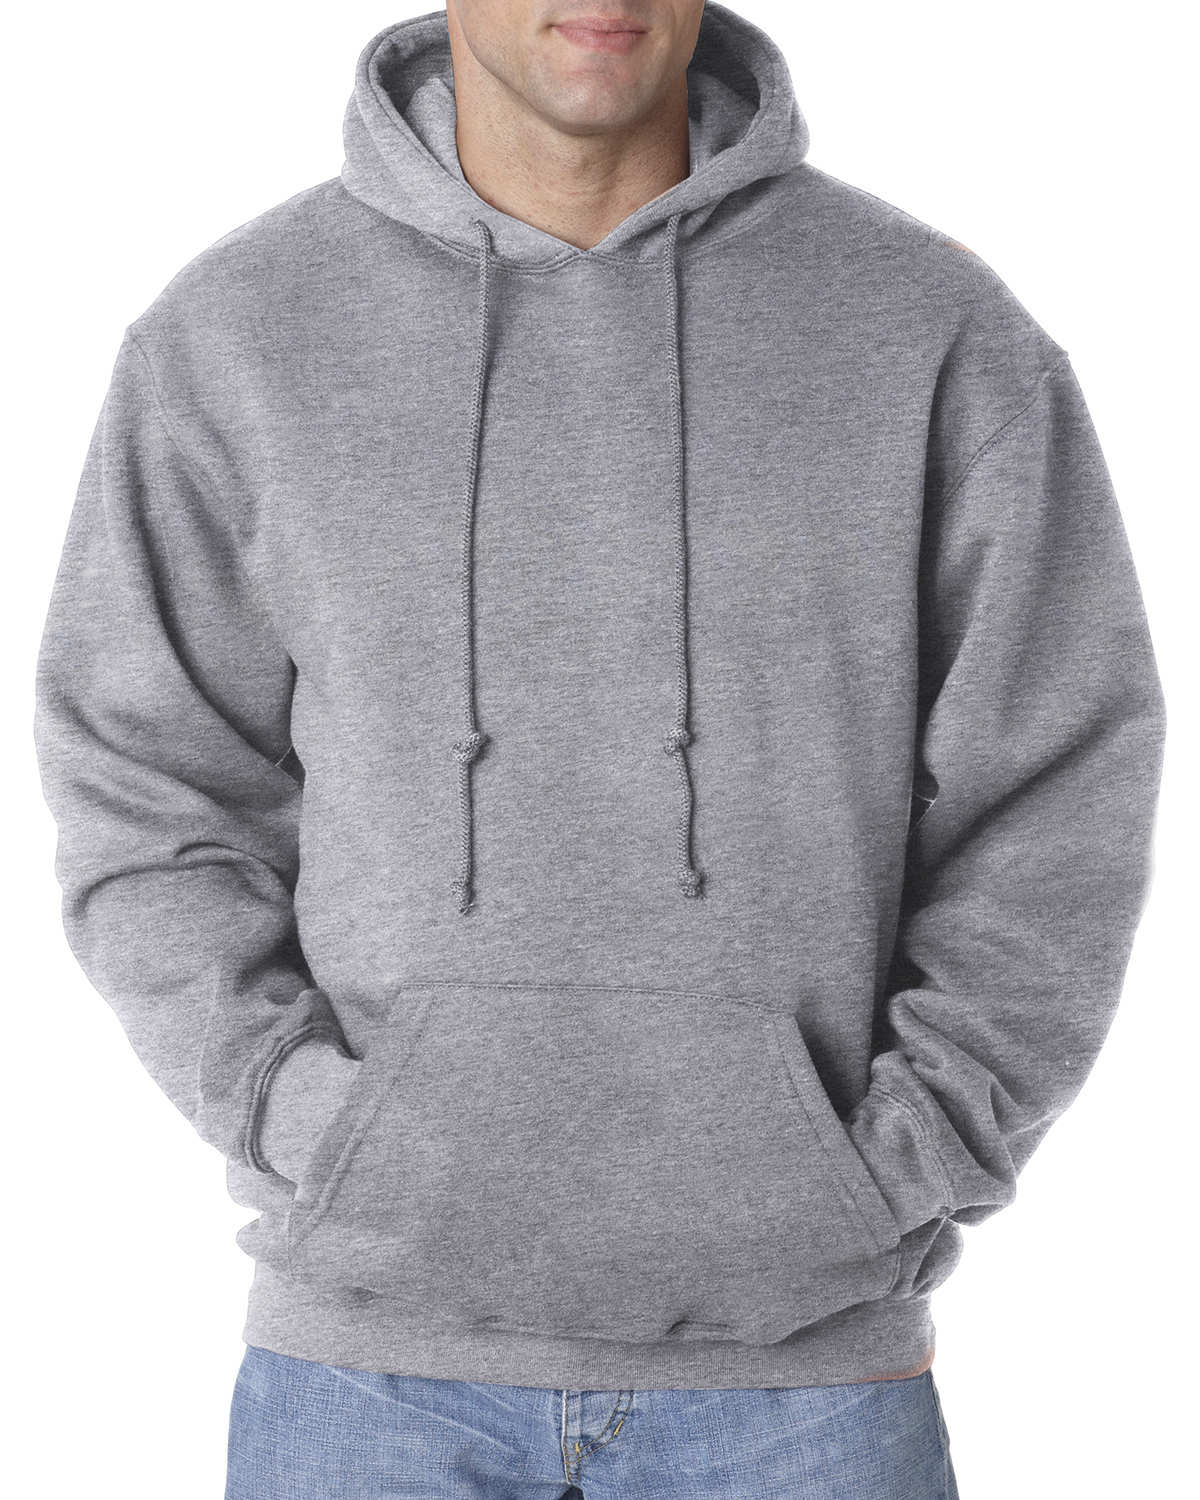 Adult 9.5 oz. Pullover Hooded Sweatshirt